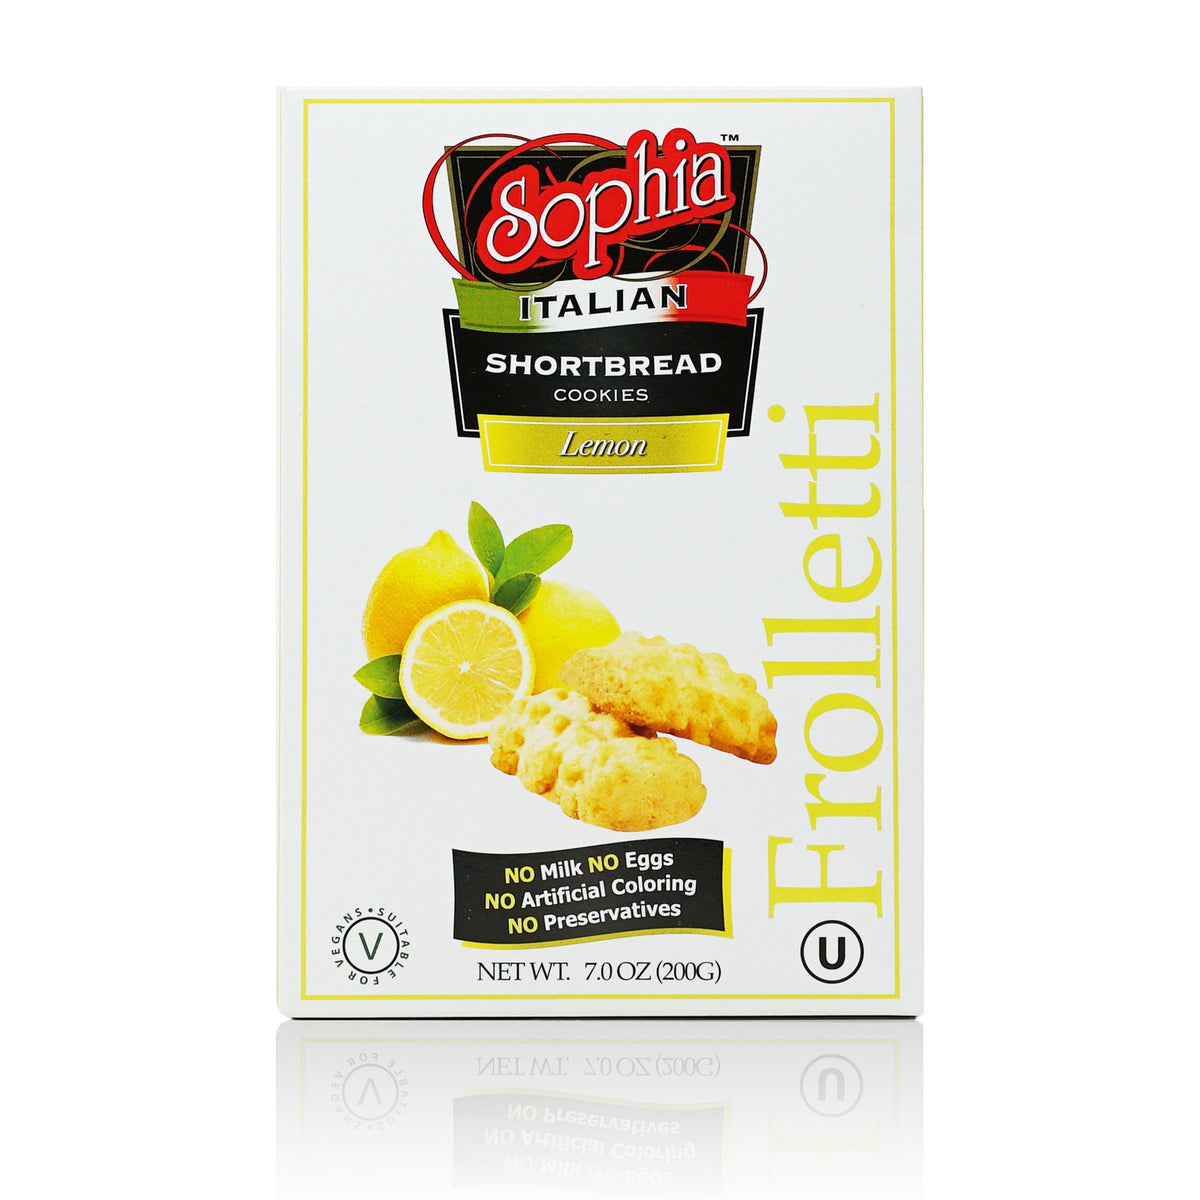 Sophia Frolletti Shortbread Cookies - Lemon